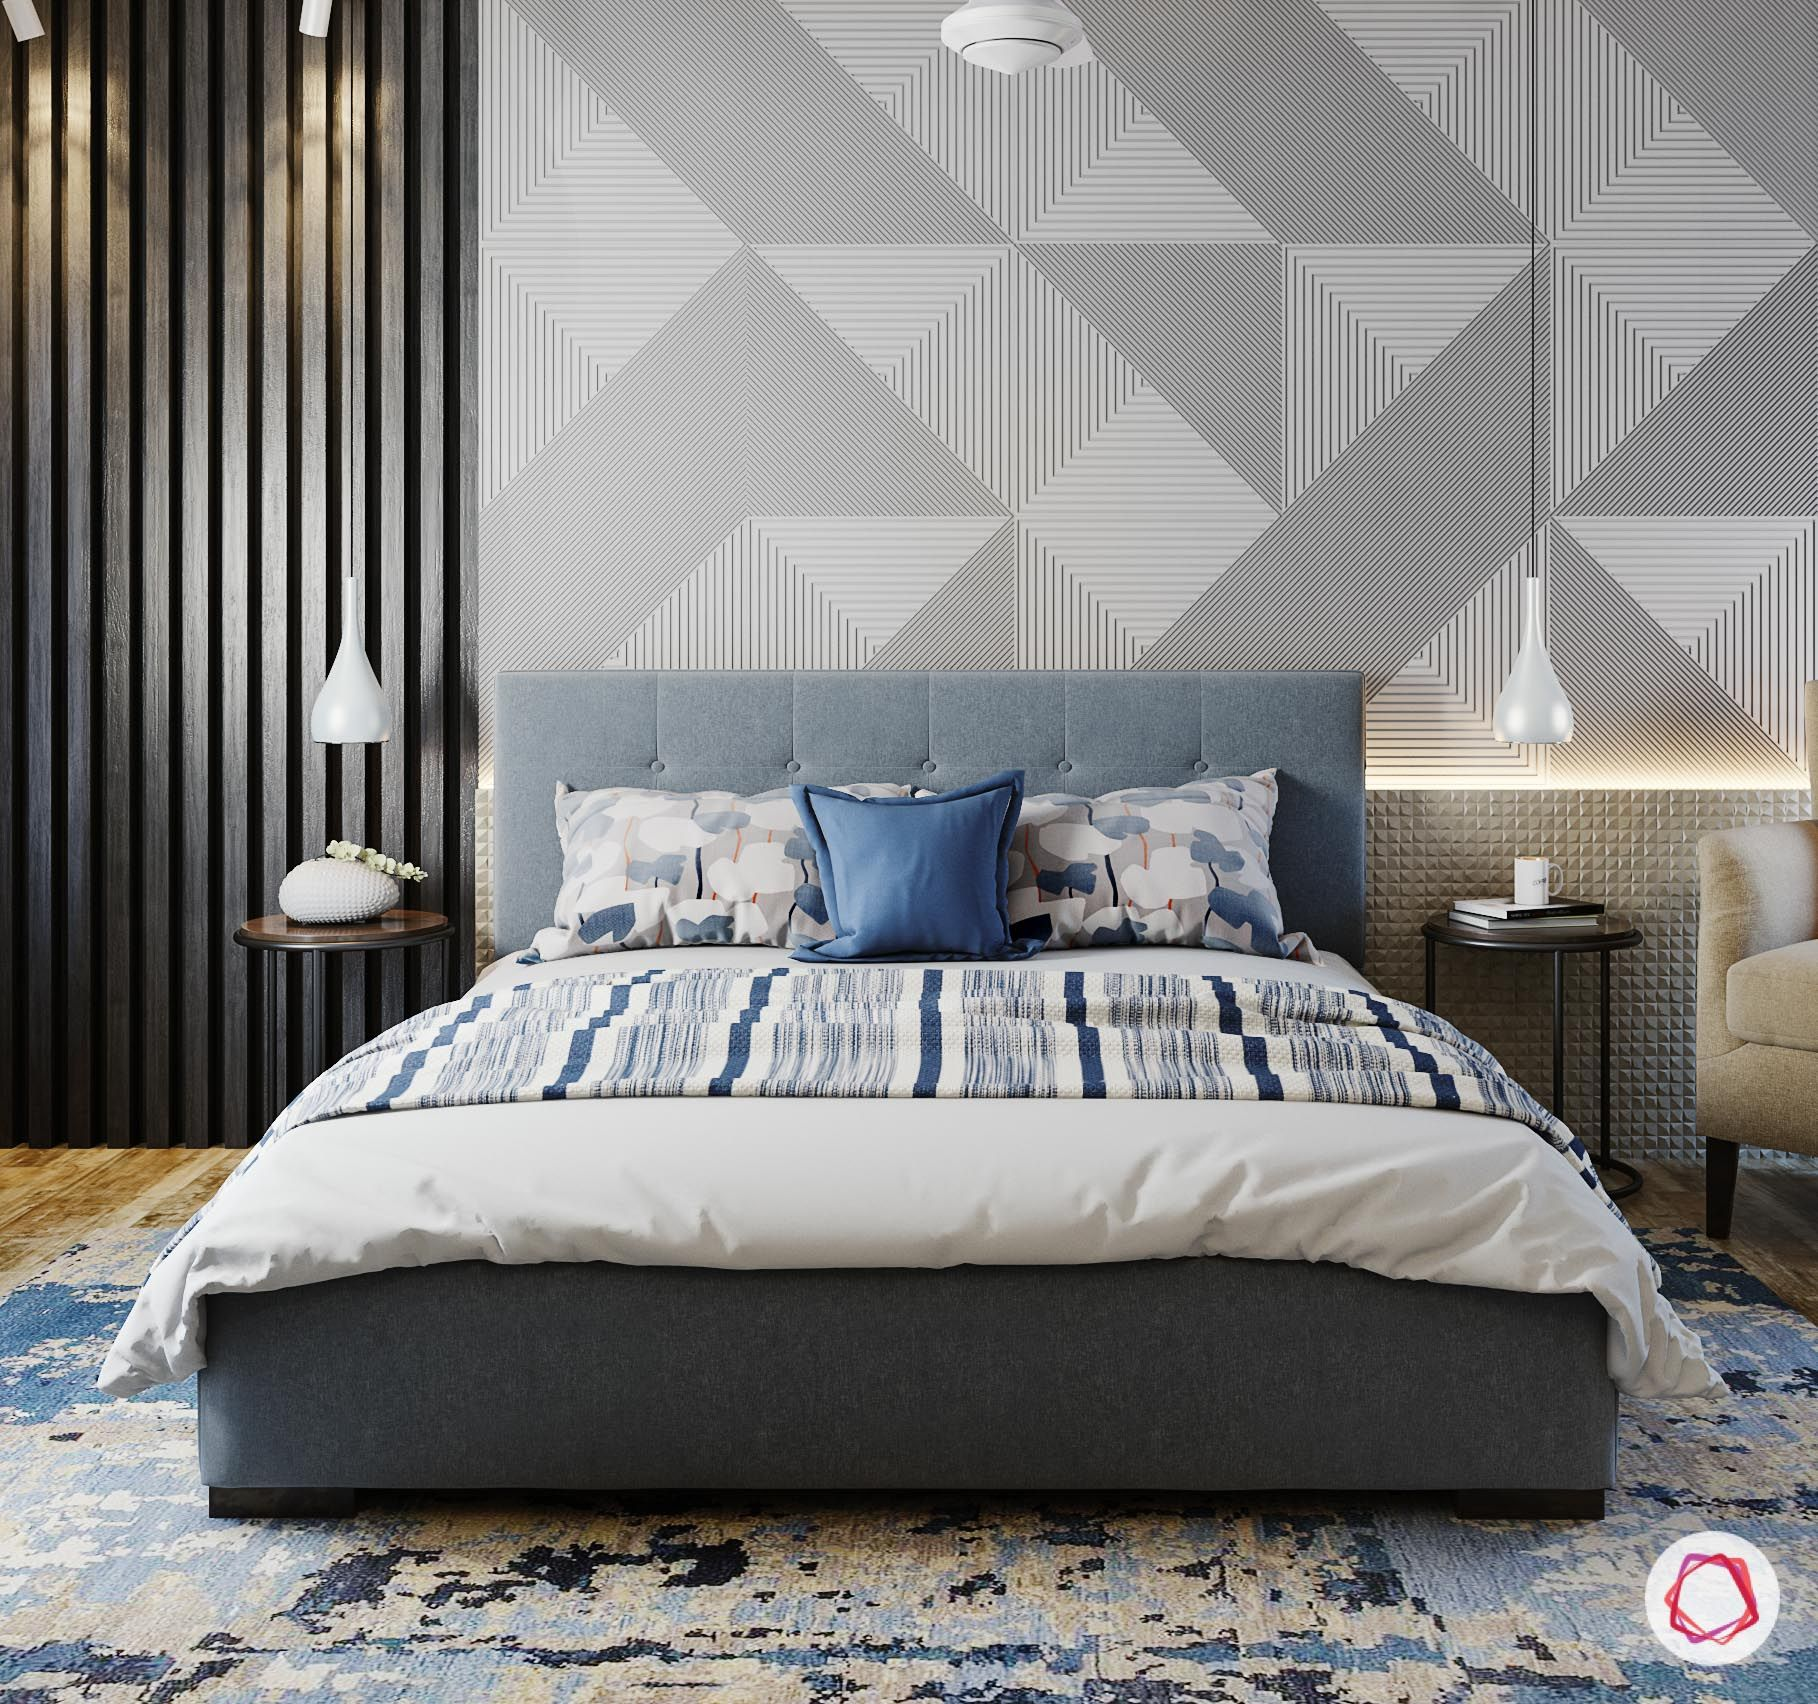 A Contemporary Bedroom With New Age